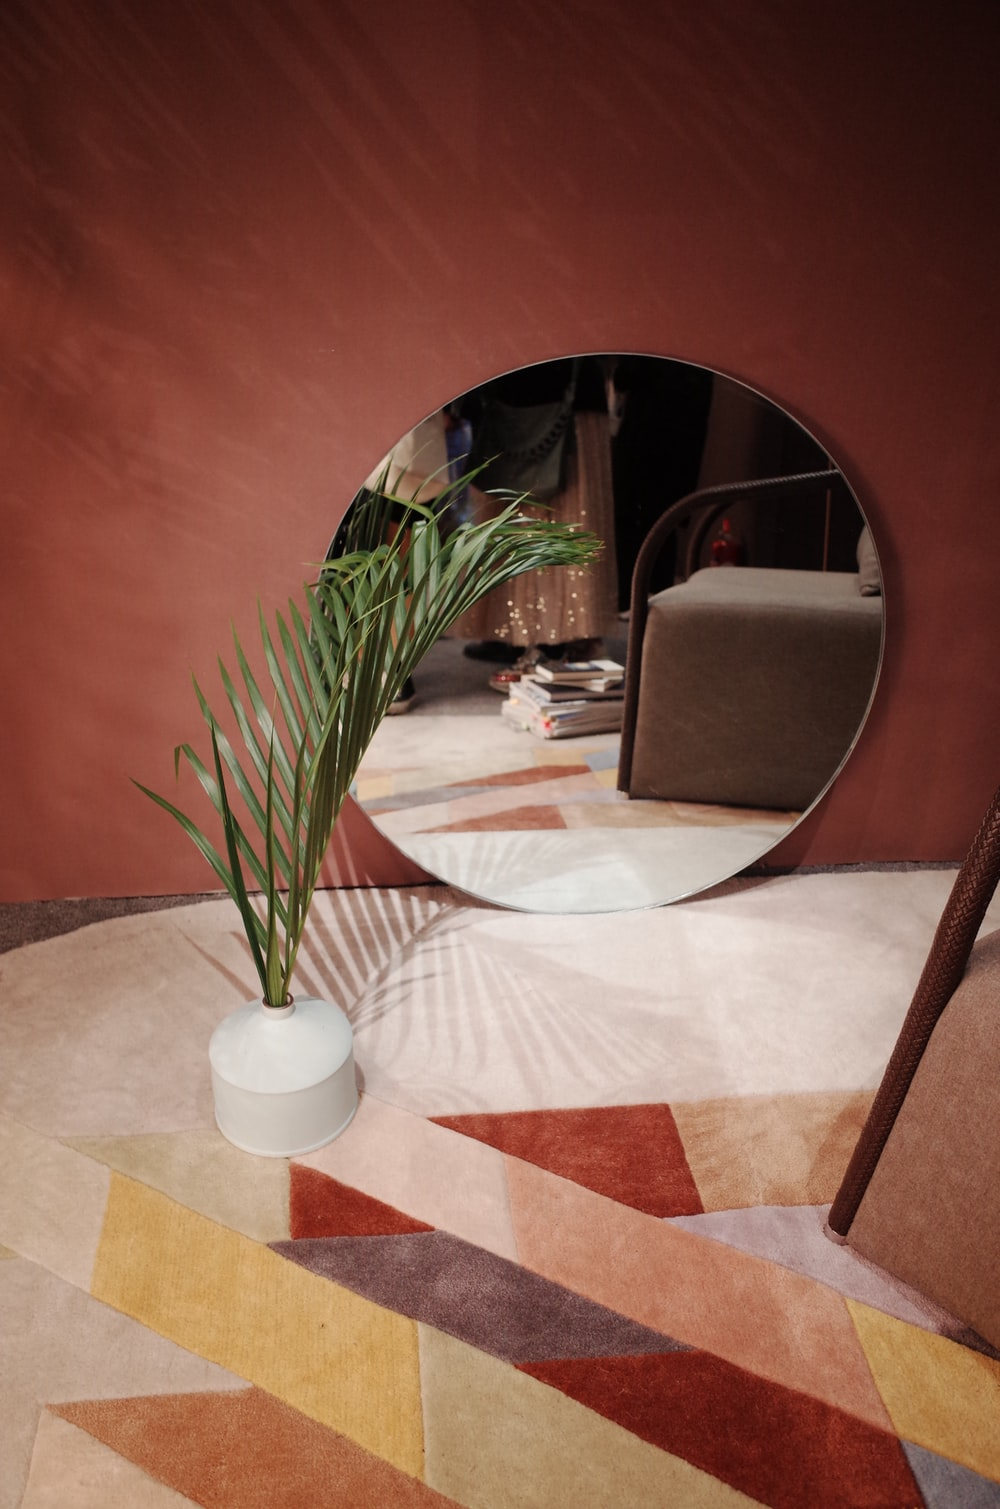 round mirror behind potted flower on floor inside room